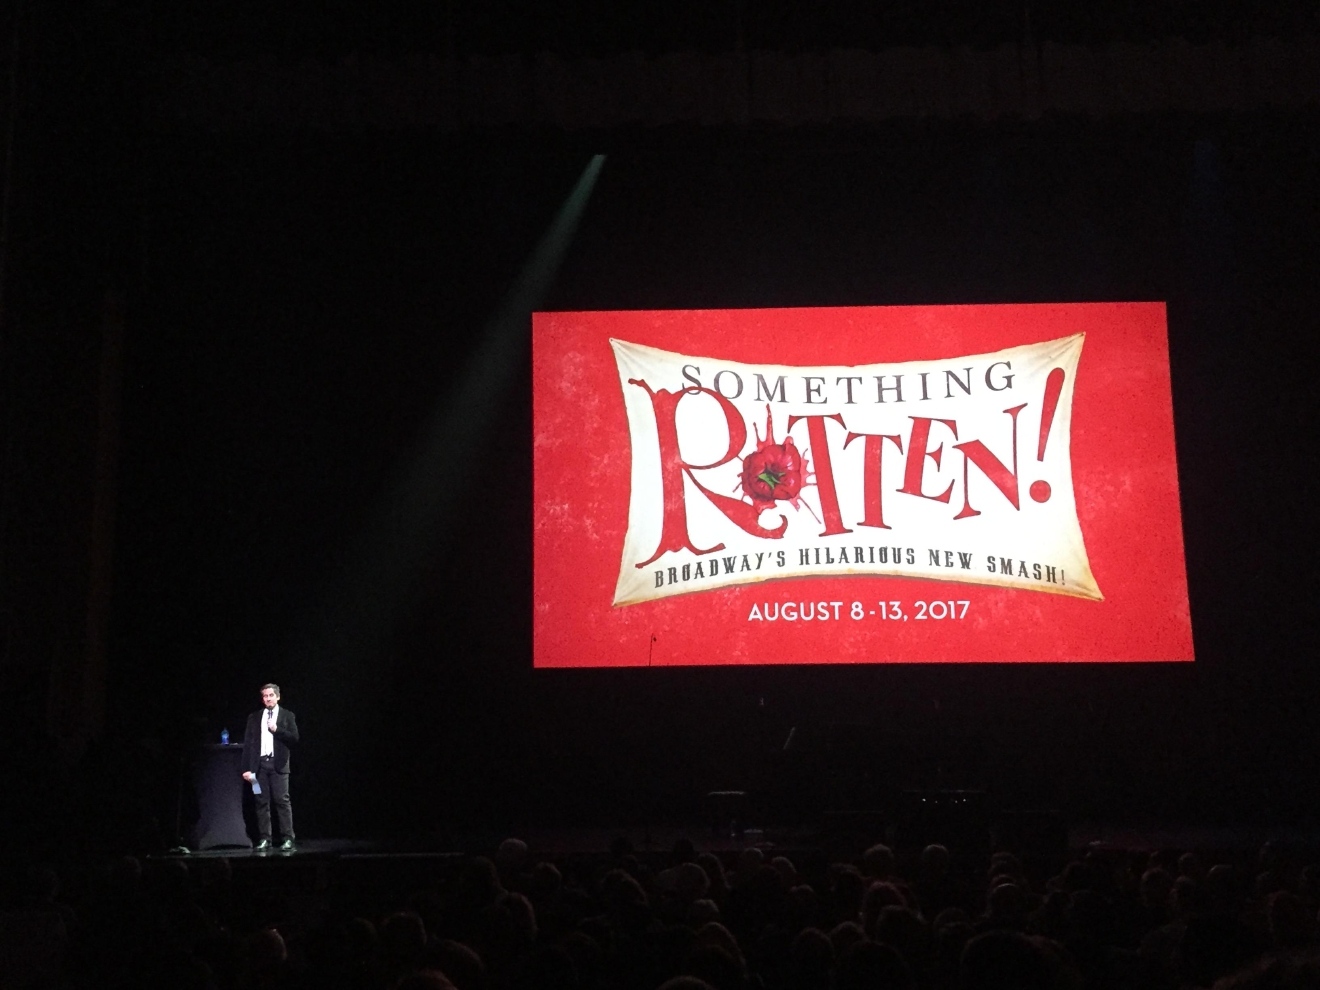 Something Rotten! was revealed as an upcoming tour during the Smith Center for the Performing Arts 2017-2018 Broadway series preview Tuesday, Feb. 28, 2017, in Reynolds Hall. The event's MC Seth Rudetsky had the spotlight on as he introduced the first musical of the 2017-2018 series (Jami Seymore | KSNV)